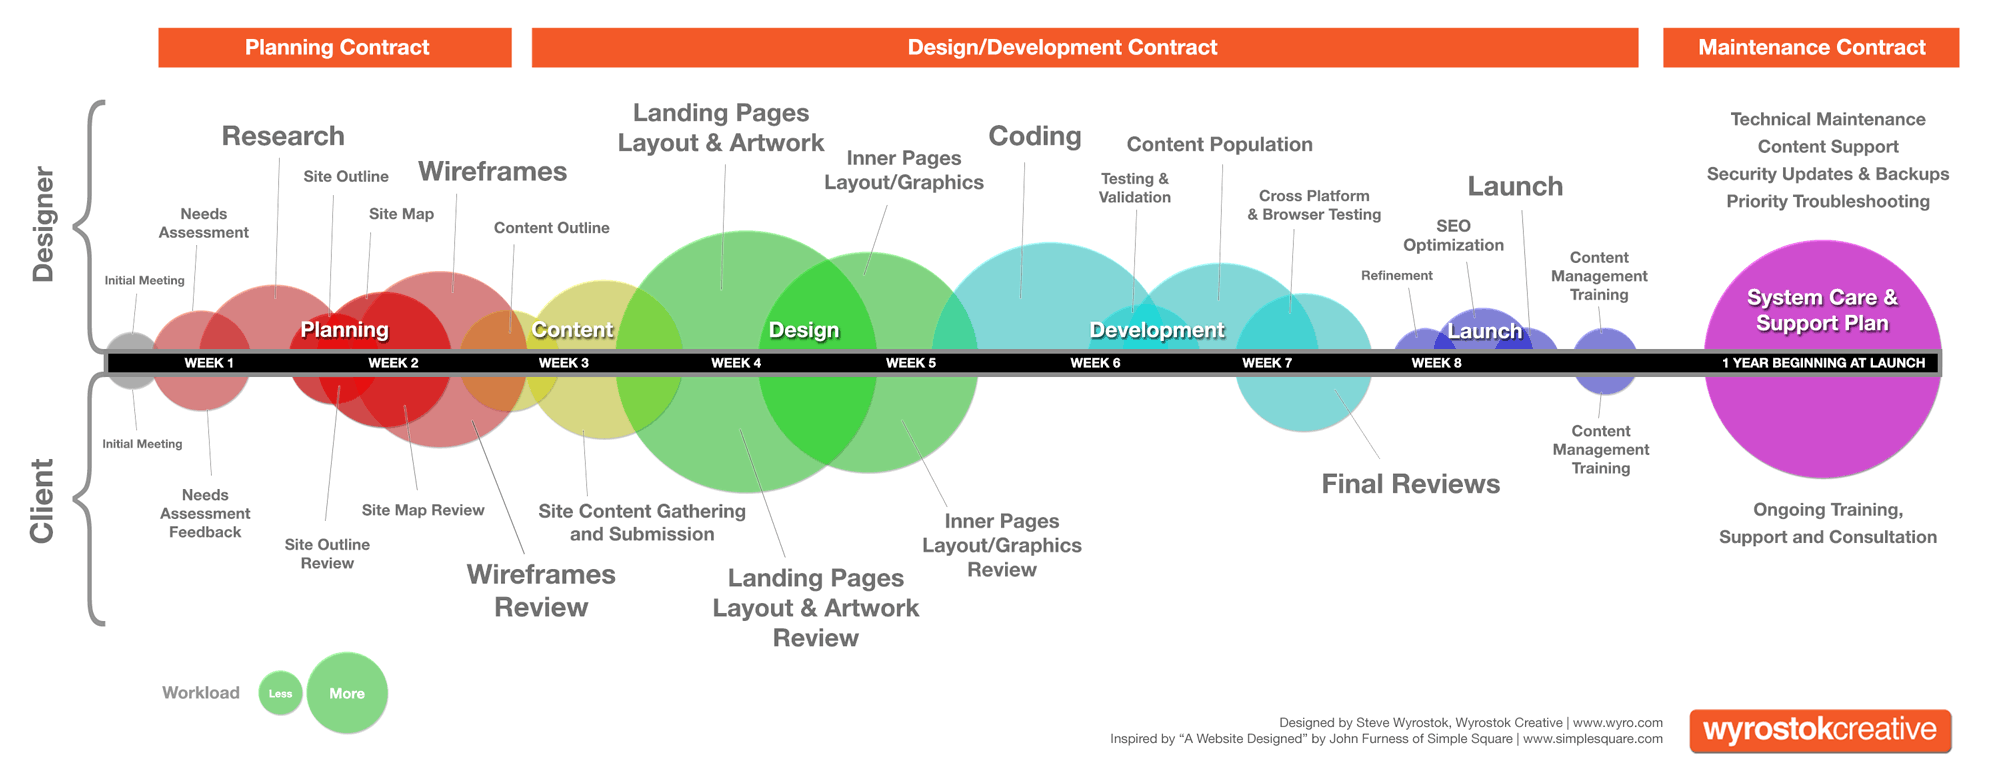 Web Development Timeline Timeline Design Web Design Web Development Design